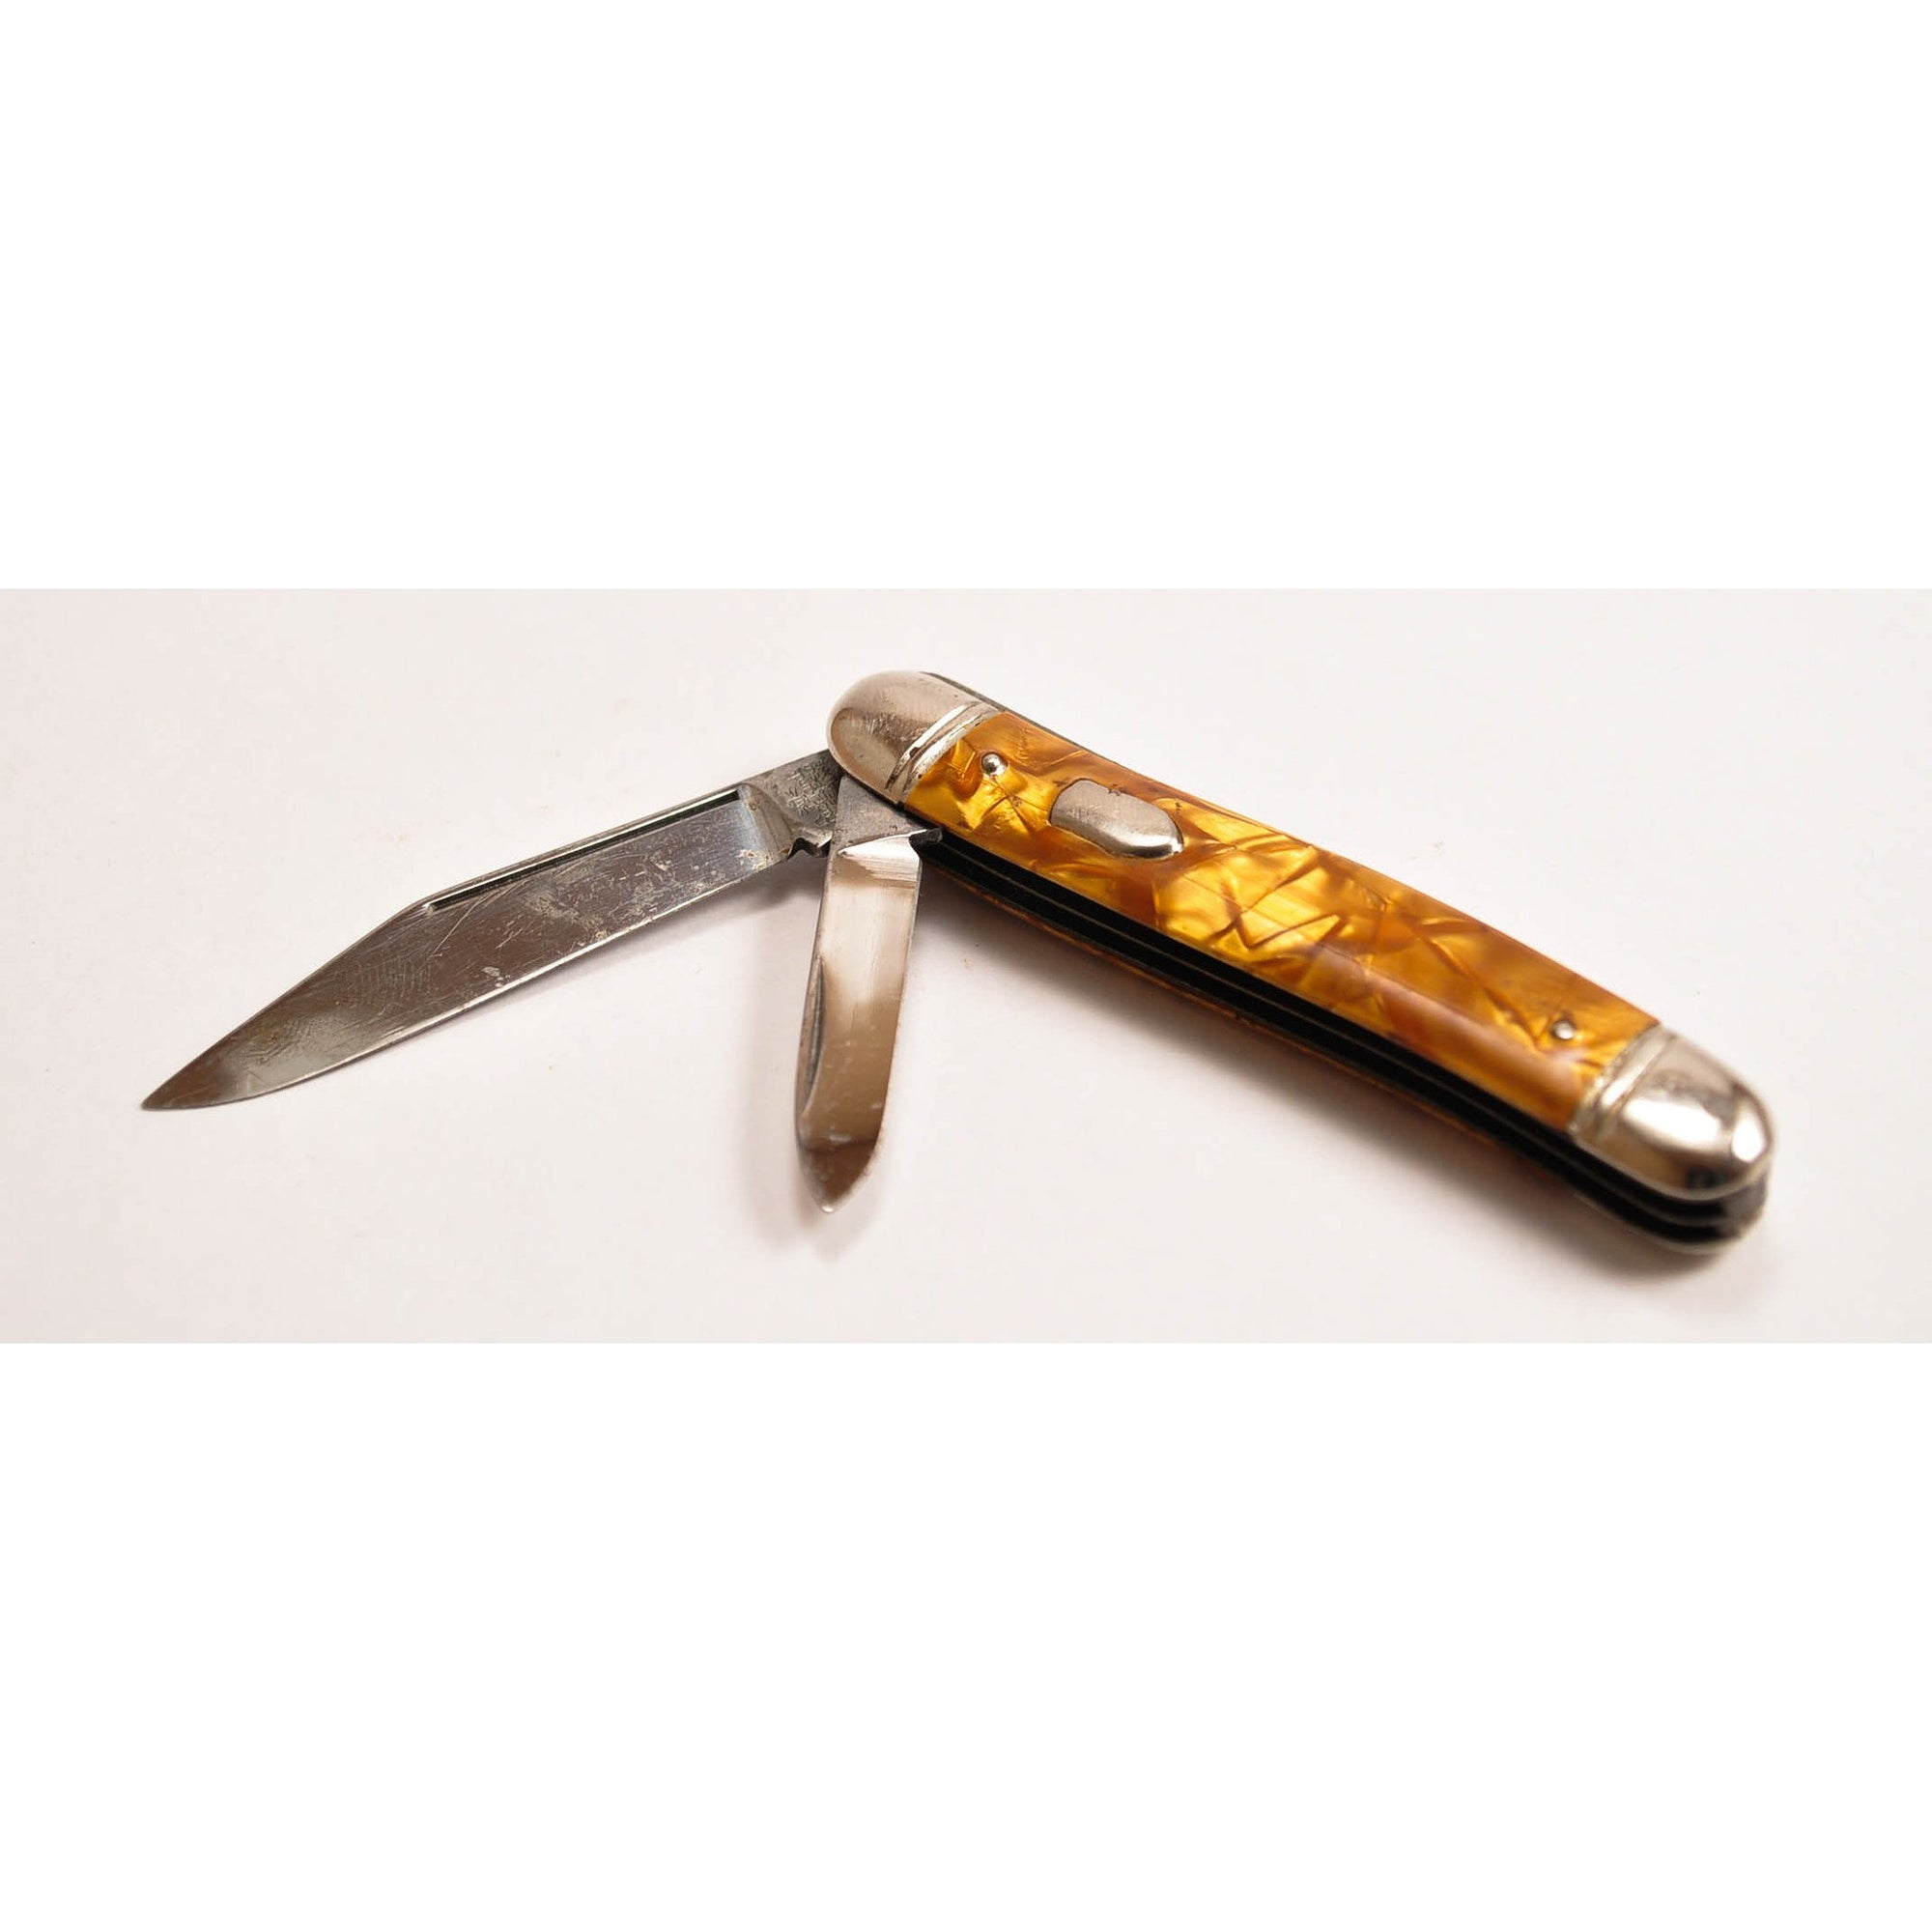 Richards Sheffield Two Blade Jacknife,Miscellaneous- Canada Brass